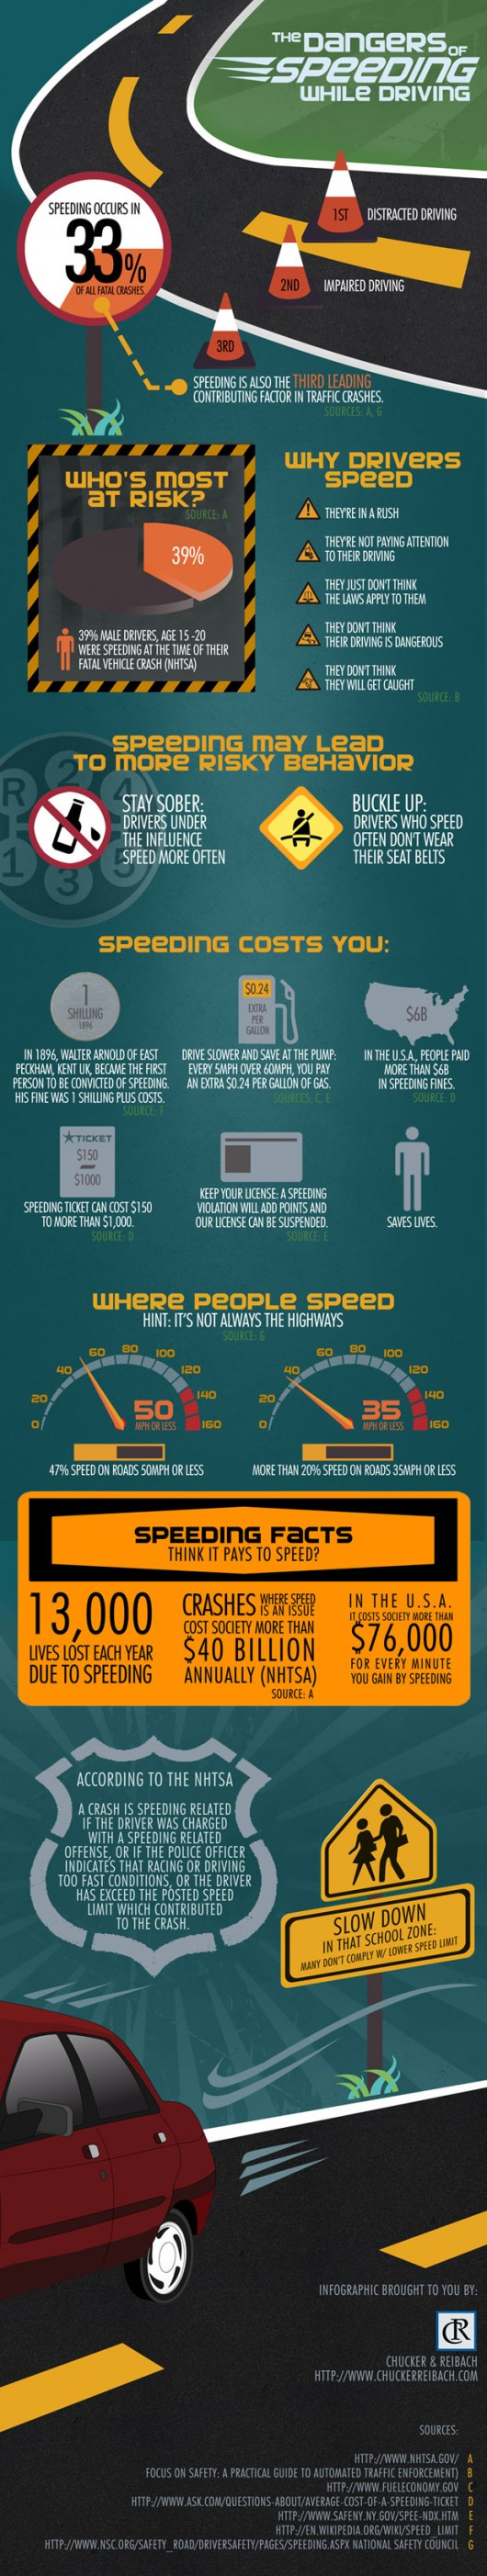 Speeding-Dangers-Infographic-chucker-reibach-530x2805